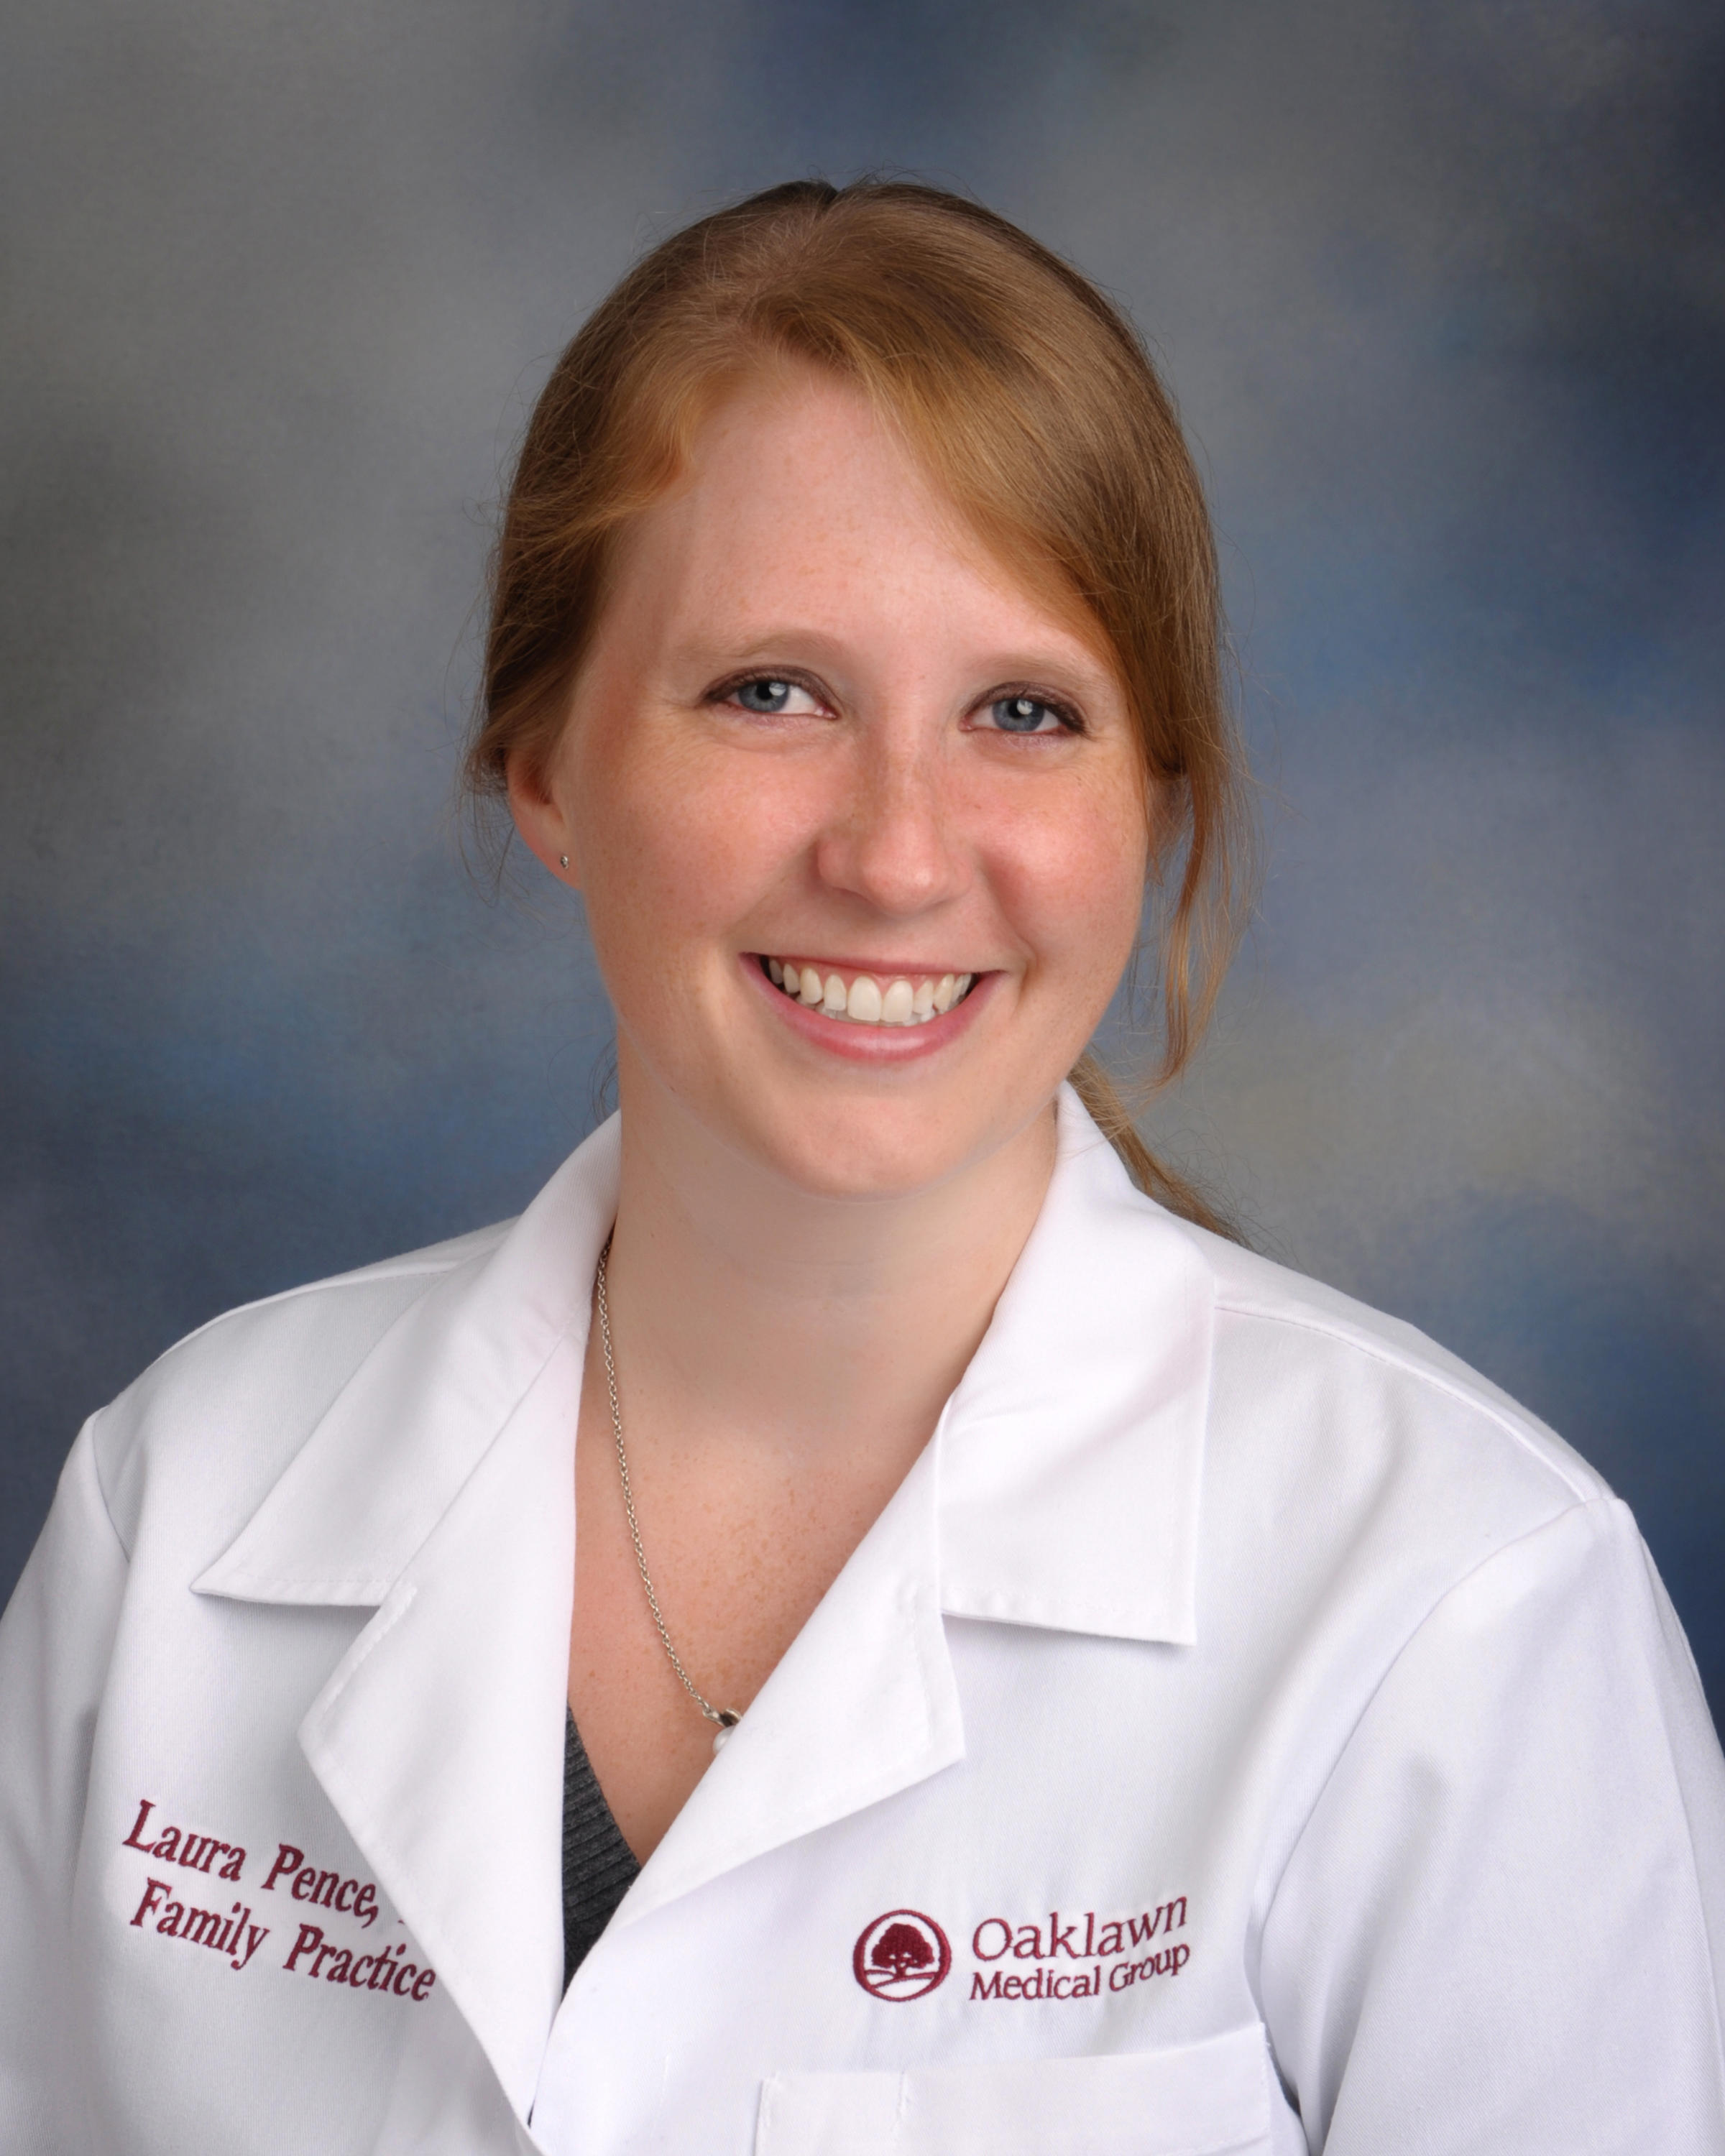 Laura Pence MD